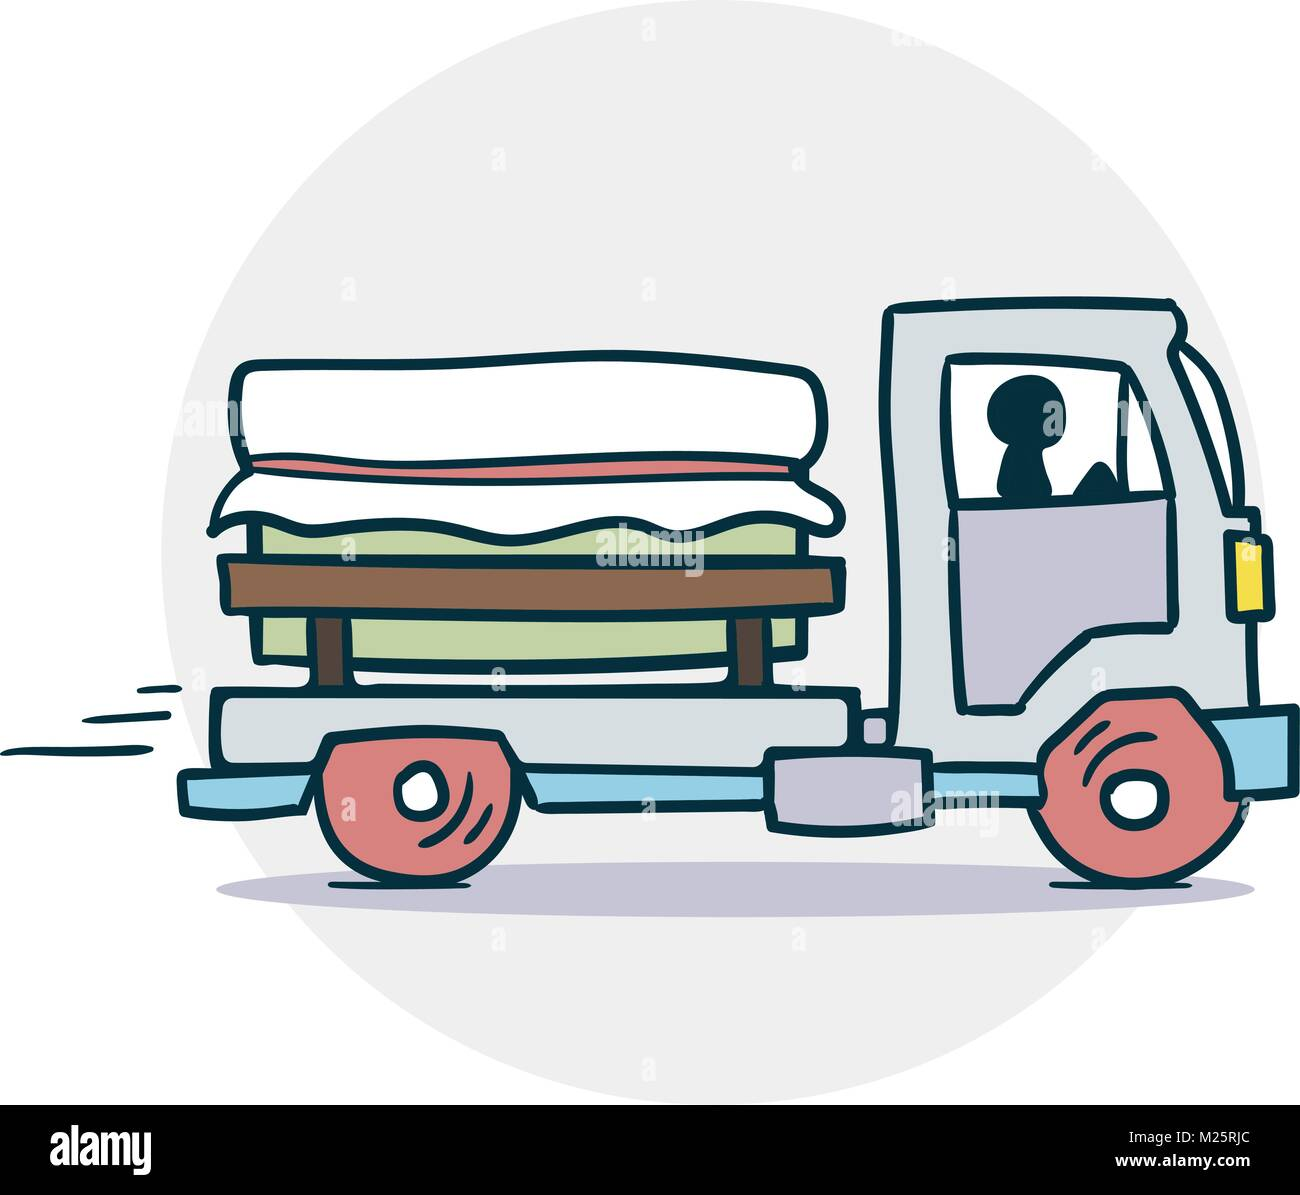 Truck delivers cargo icon - Stock Vector